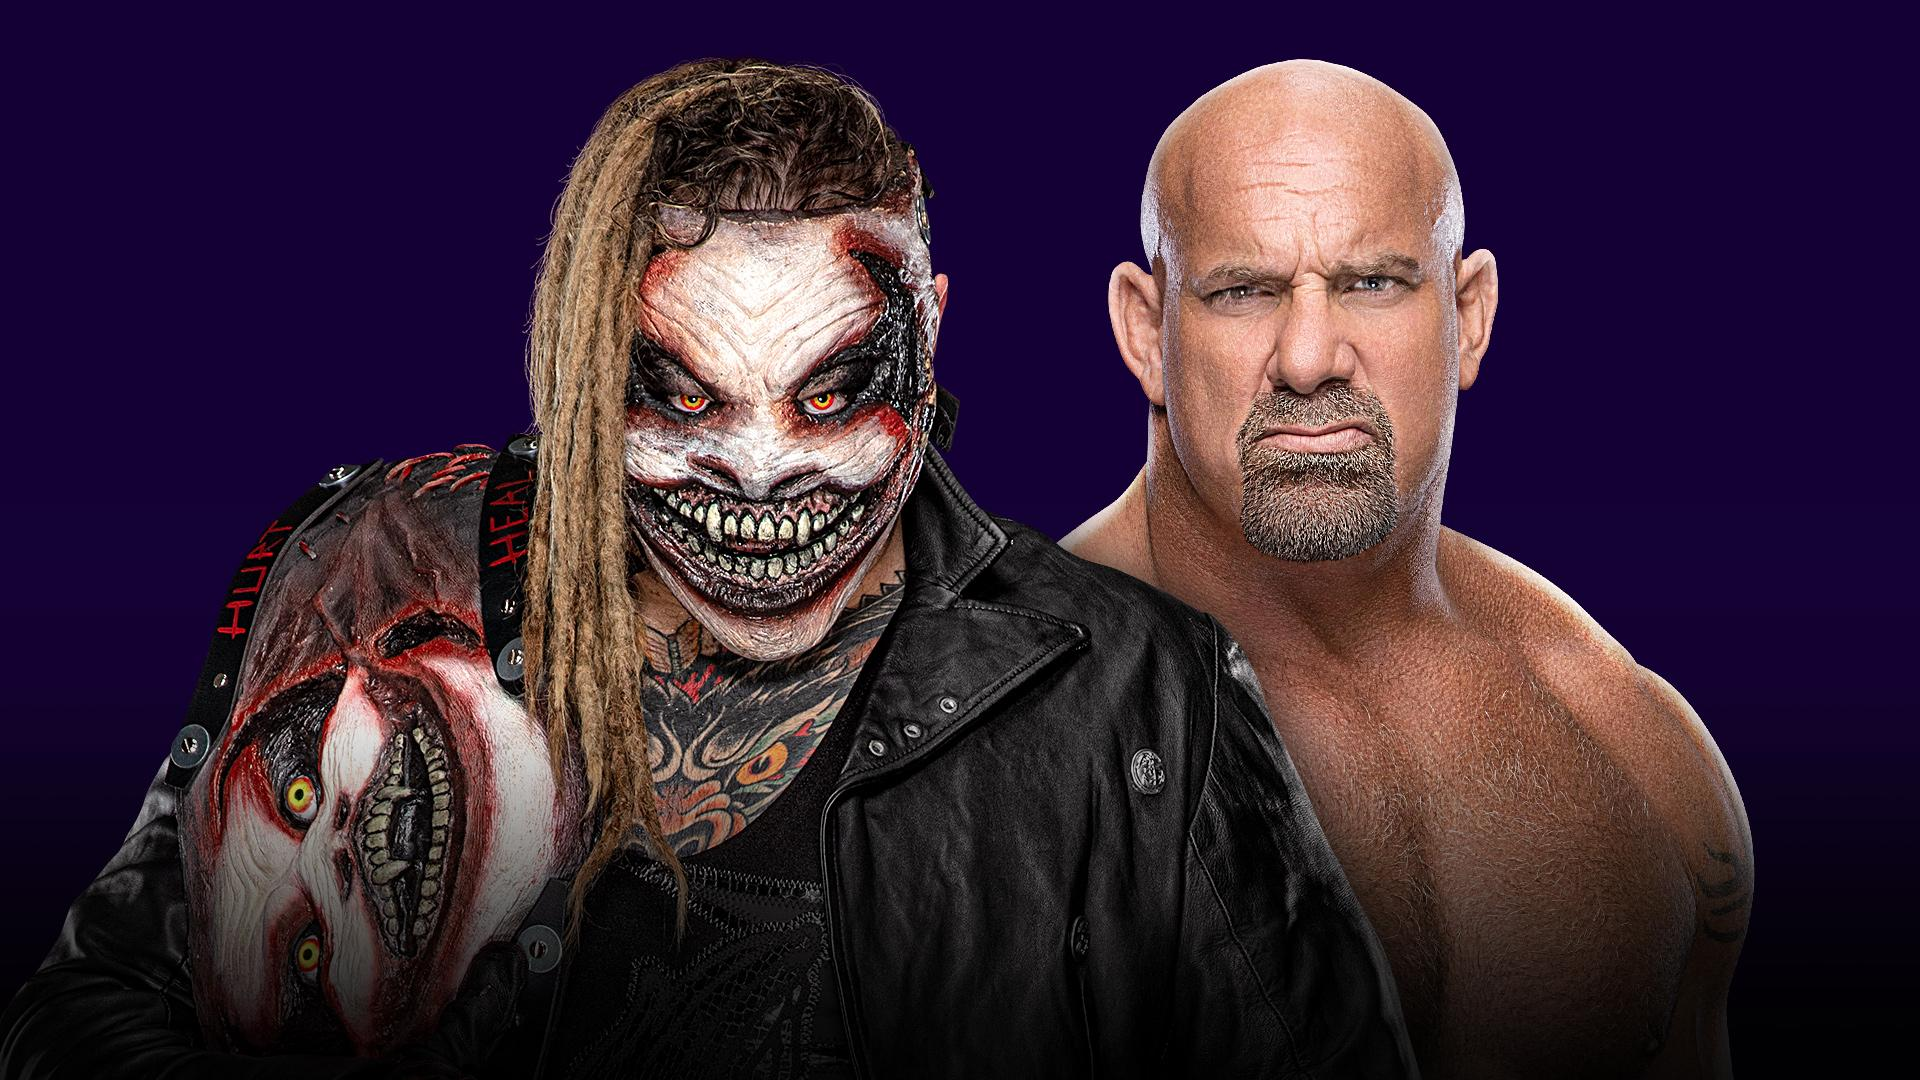 More Goldberg Matches Coming